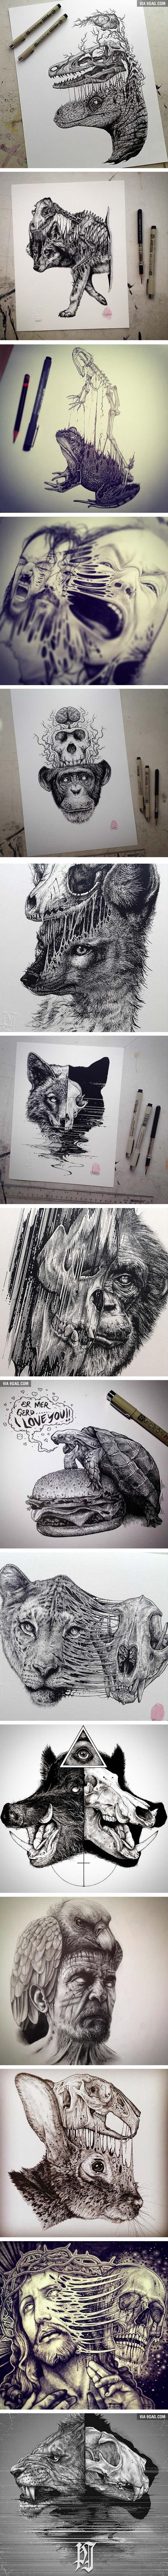 Animals Leave Their Skeletons Behind In These Stunning Dark Drawings (By Paul Jackson)